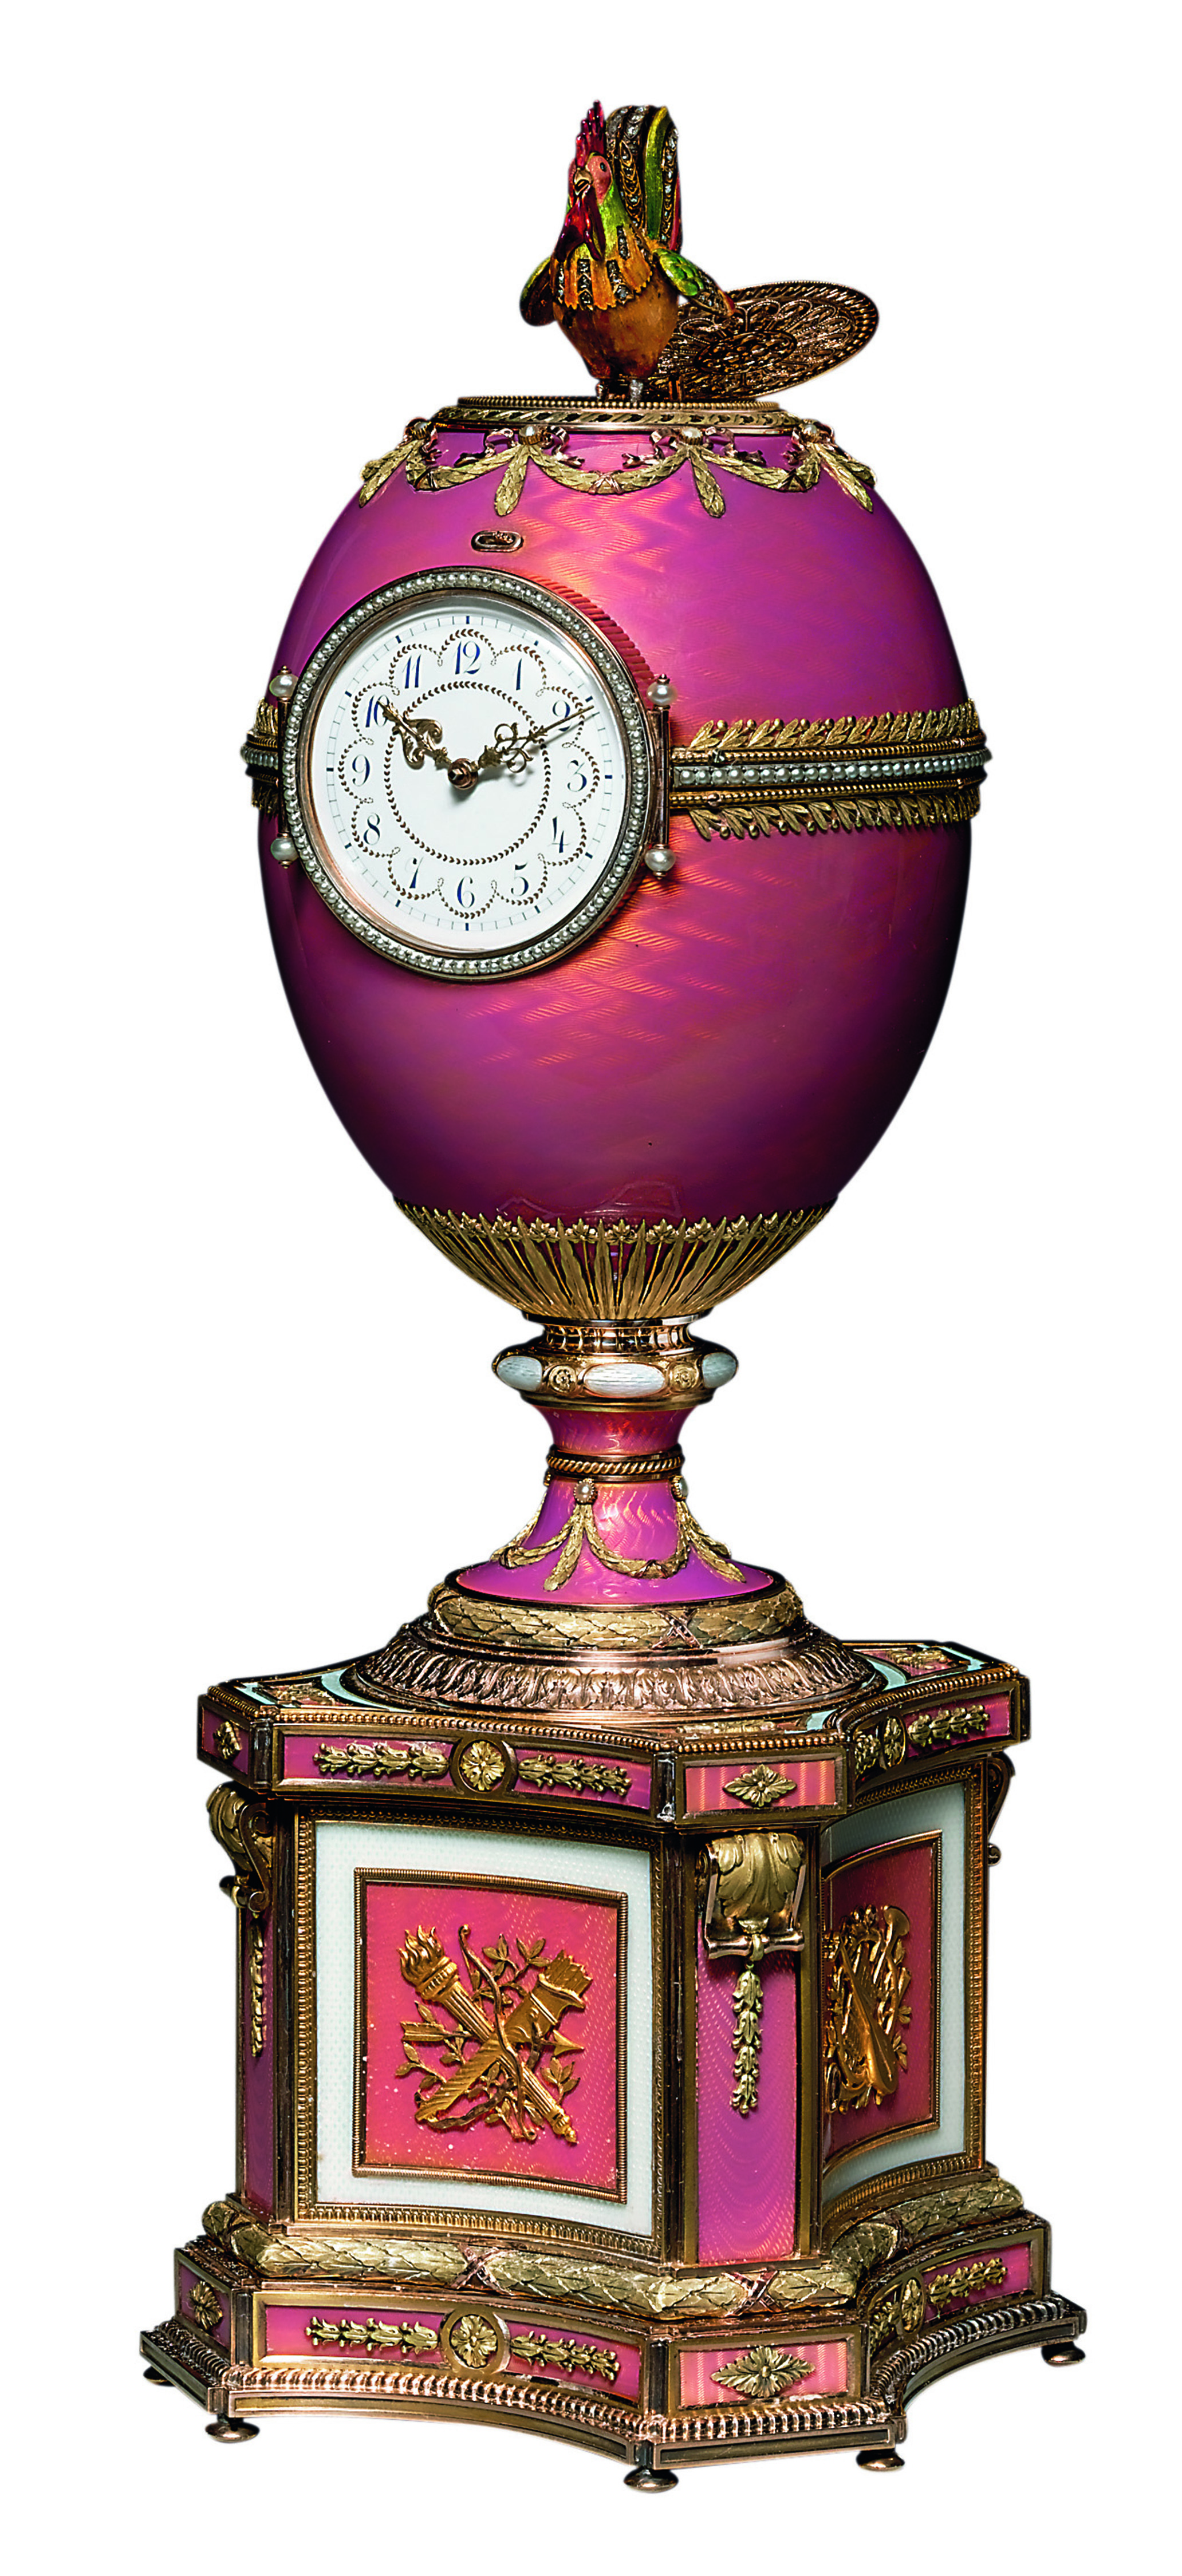 Carl Fabergé, The Rothschild Fabergé Egg, 1902. Sold on November 28, 2007, in London. © Christie's Images Limited 2016